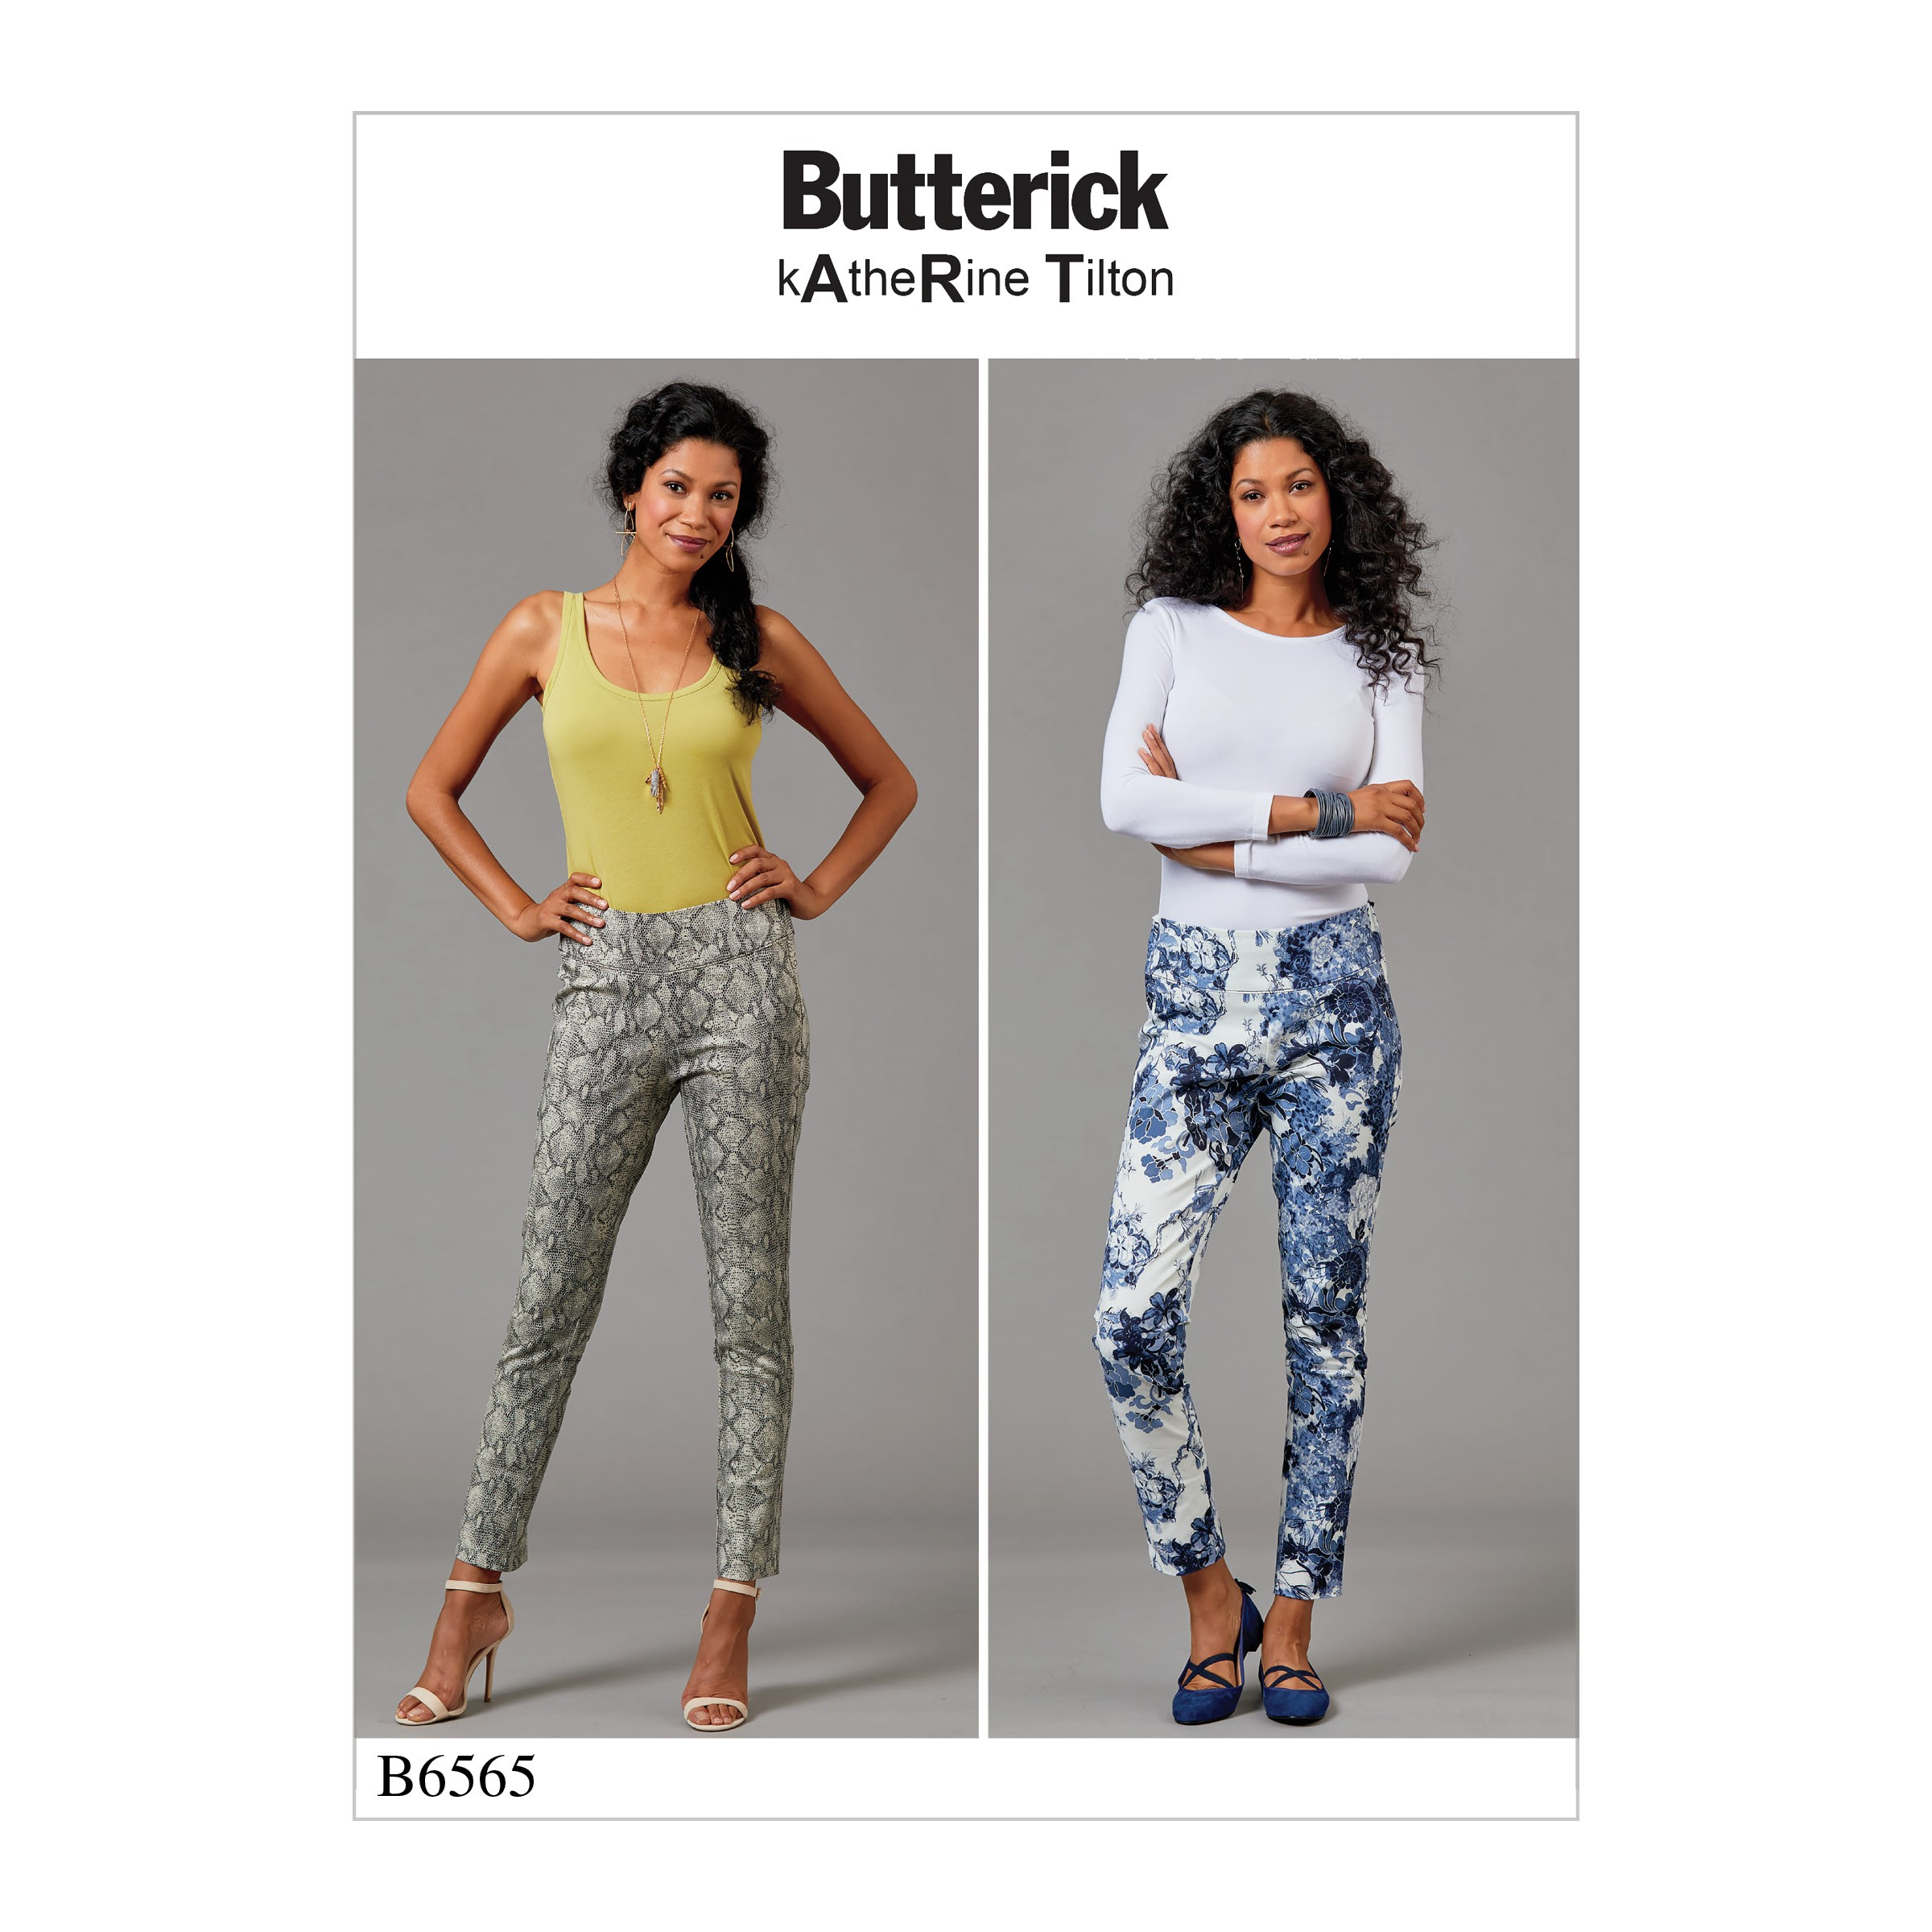 Butterick Sewing Pattern 6565 Misses' Close Fitting Pull-On Pants